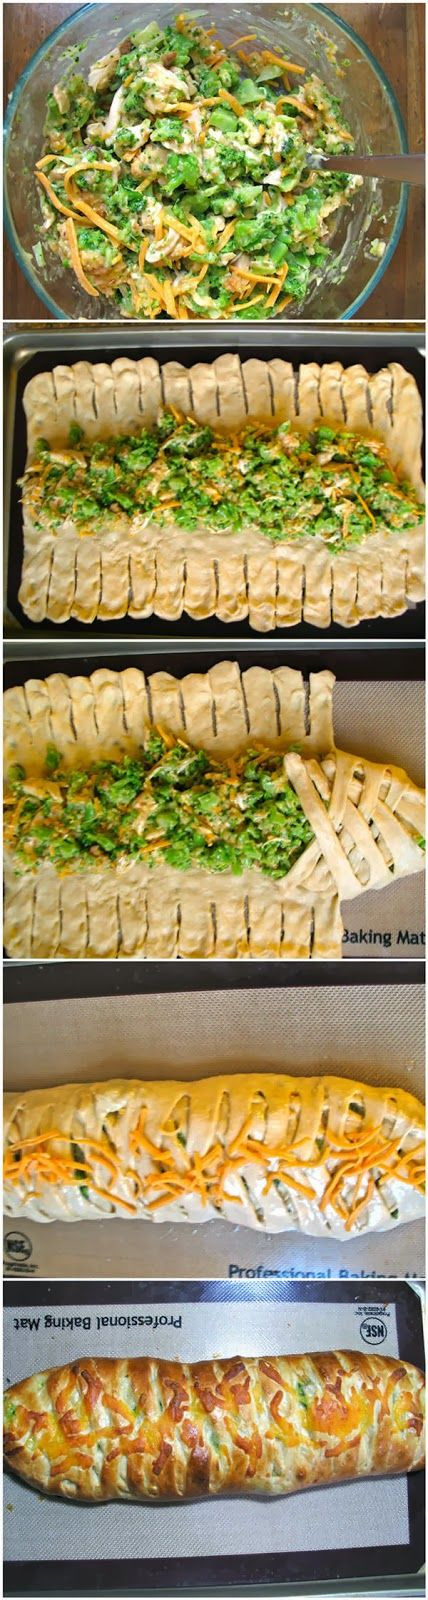 Broccoli Cheddar Chicken Braid…made with crescent rolls. Would be delicious as an appetizer, sandwich with a bowl of soup, or as an entree. Ingredients: 2 eggs 1/2 cup sugar 1/2 cup Crisco 1 cup warm water 2 1/4 teaspoons yeast 1 teaspoon salt 4 cups flour  It's only fair to share...